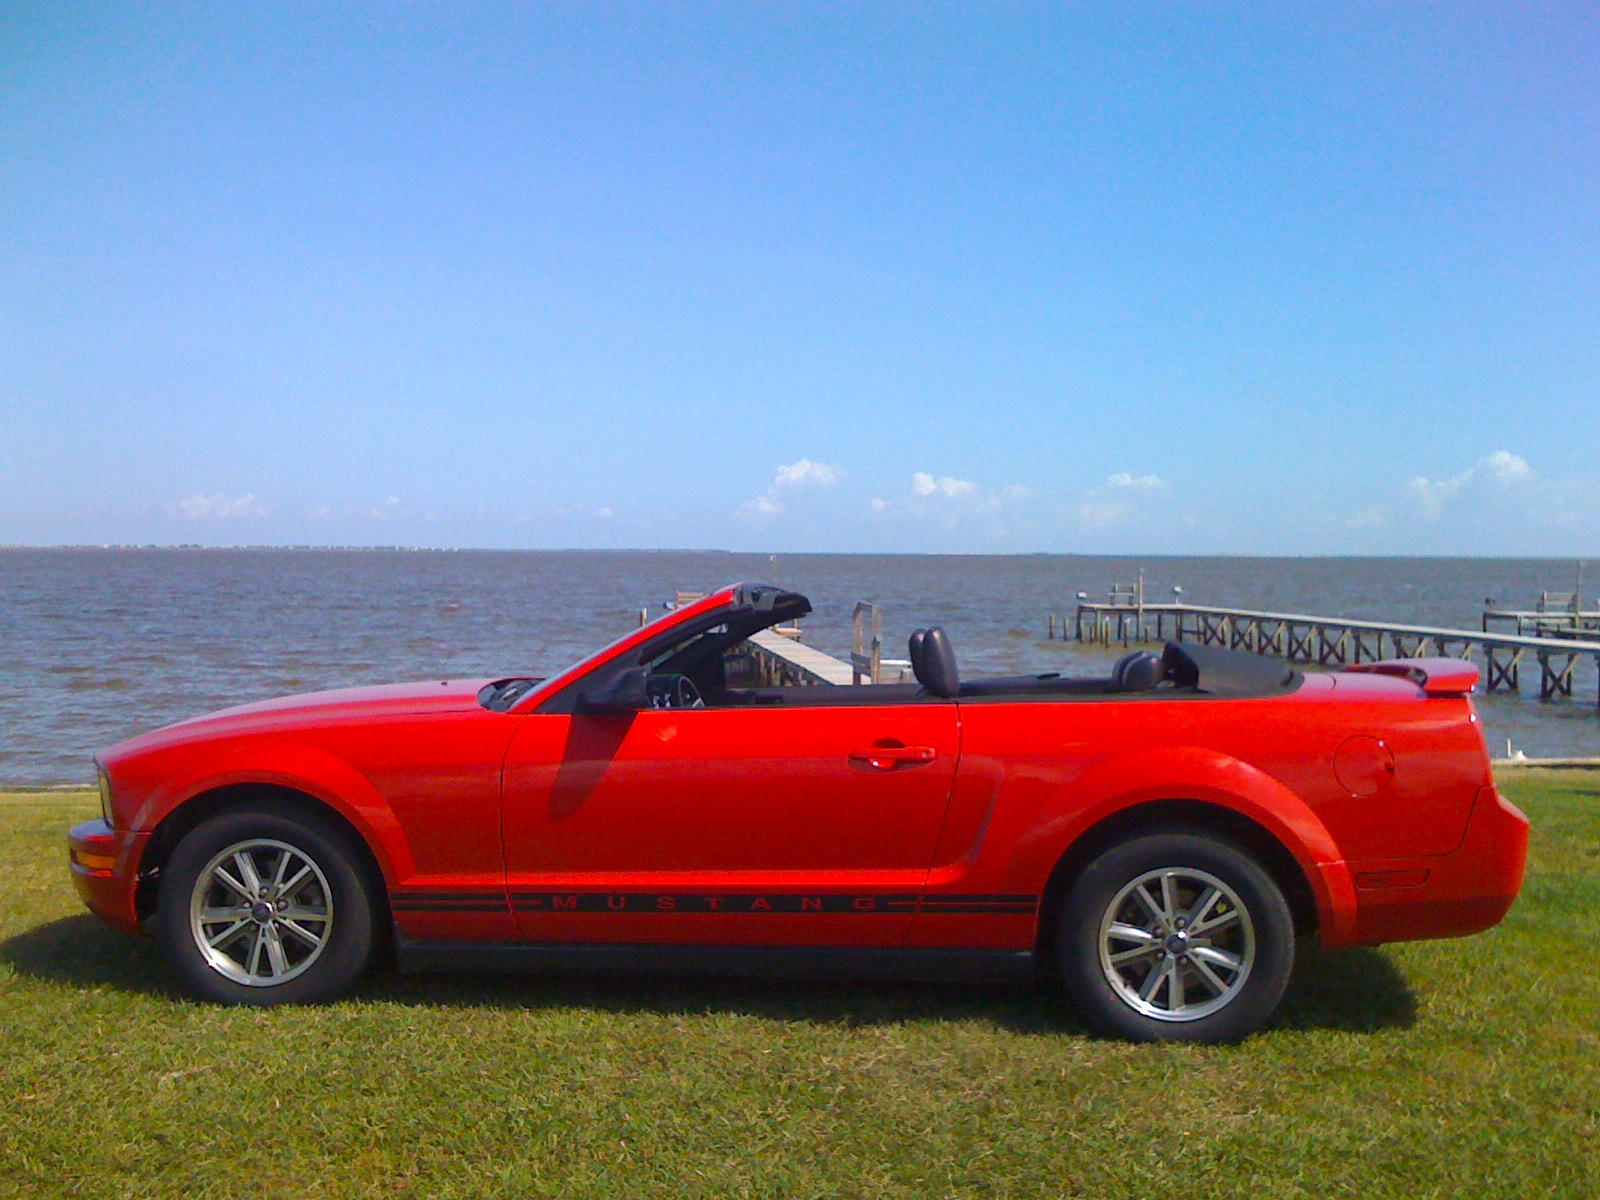 2005 ford mustang convertible photos 2018 Ford Mustang Expert Reviews, Specs and Photos m